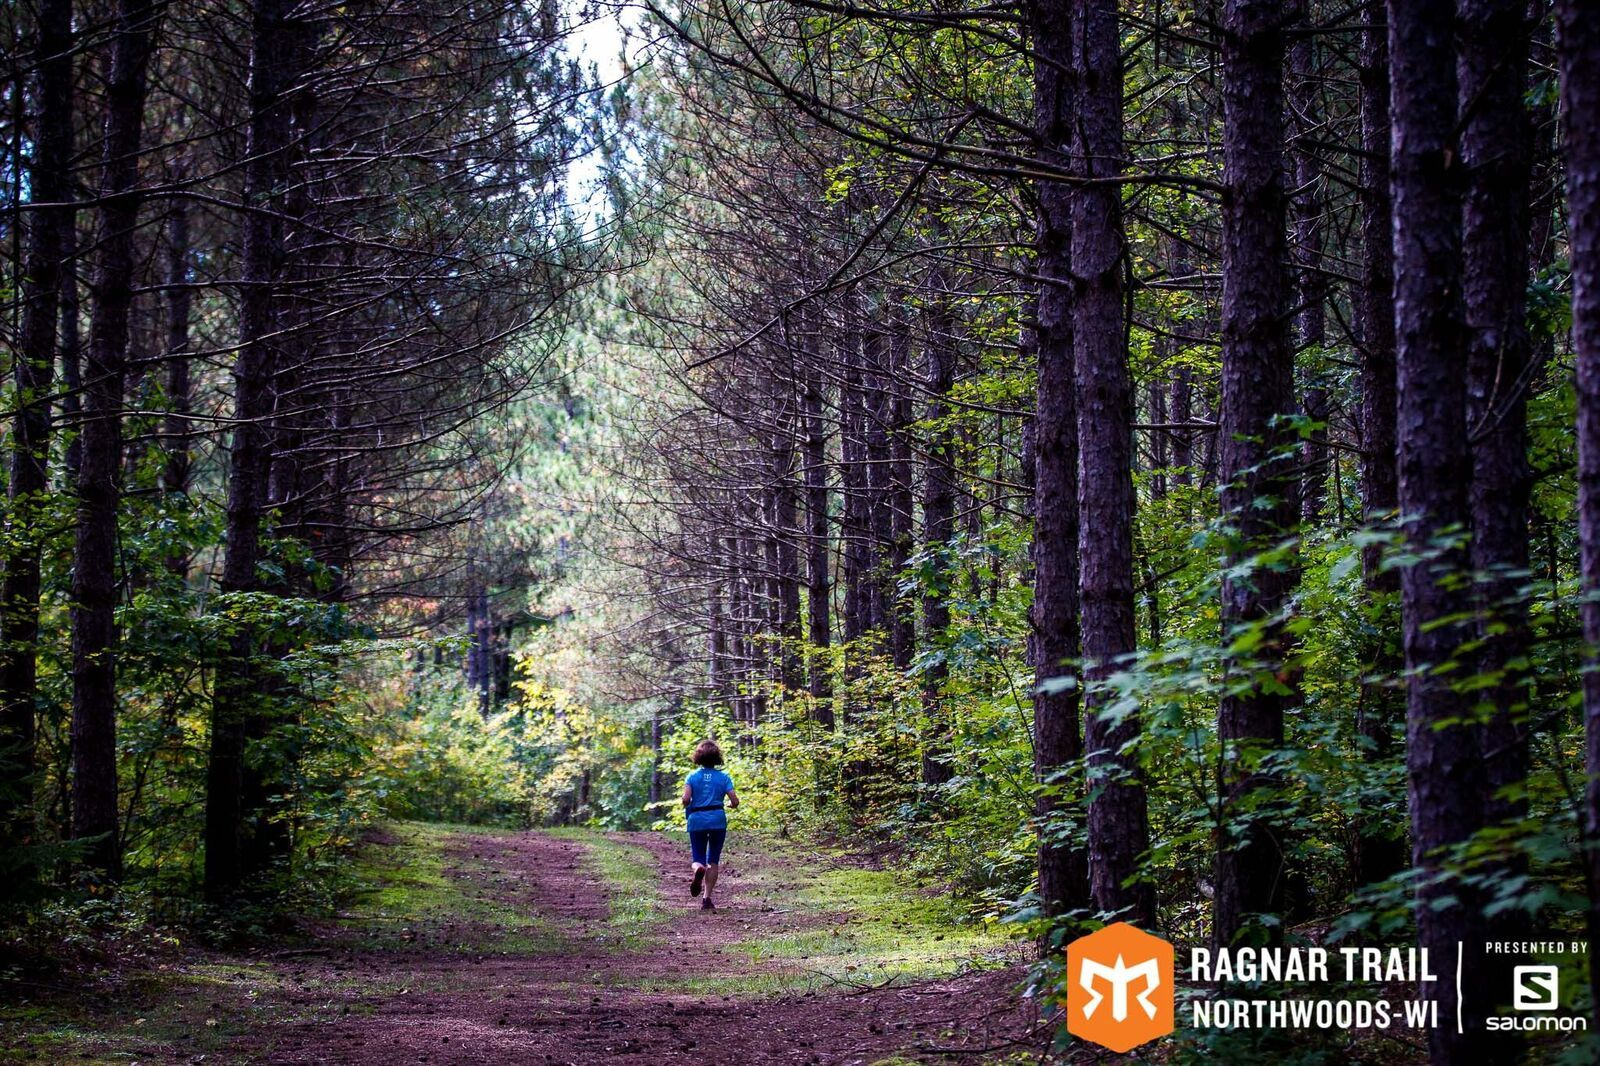 Follow the path and see where it leads. We promise it will be breathtaking. #RagnarTrailNorthwoods